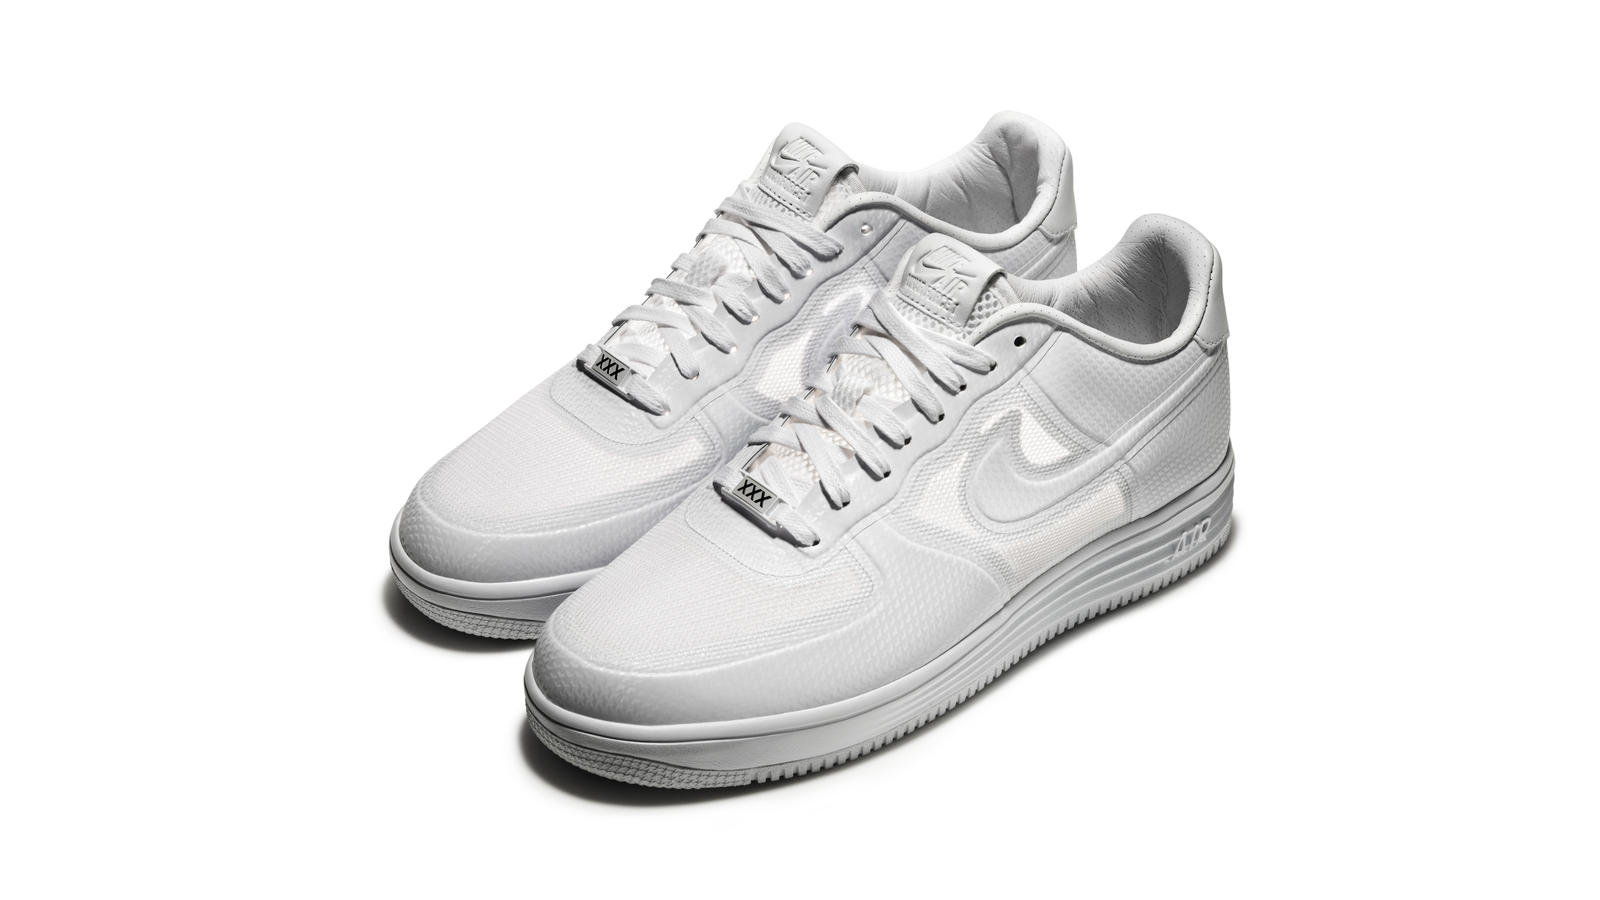 tuberculosis Enriquecer Hollywood  From History To the Future of Force: The Nike Lunar Force 1 - Nike News